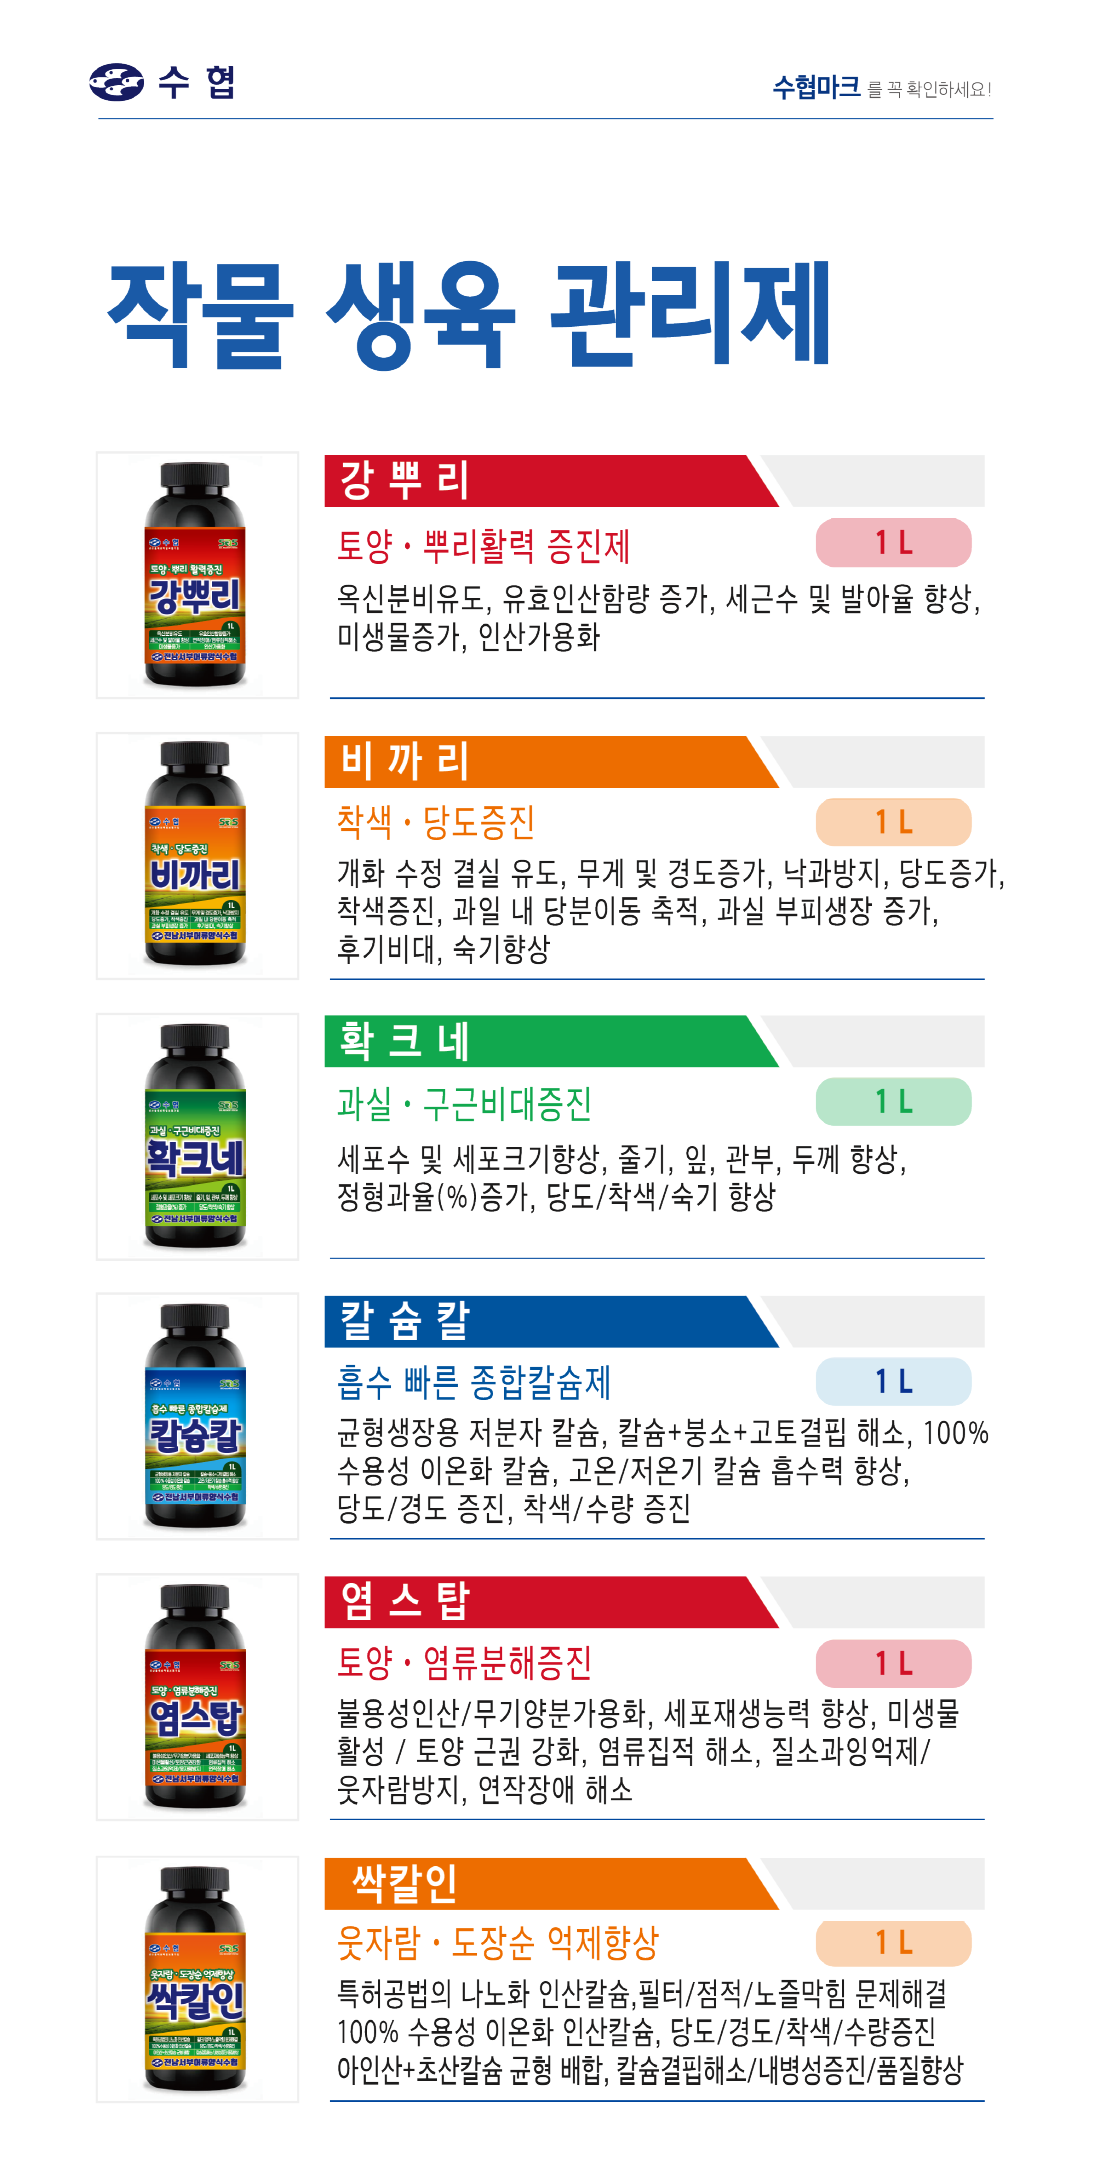 http://suhyup2019.handpr.kr/bs/se2/imgup/1589964562det1_s.png